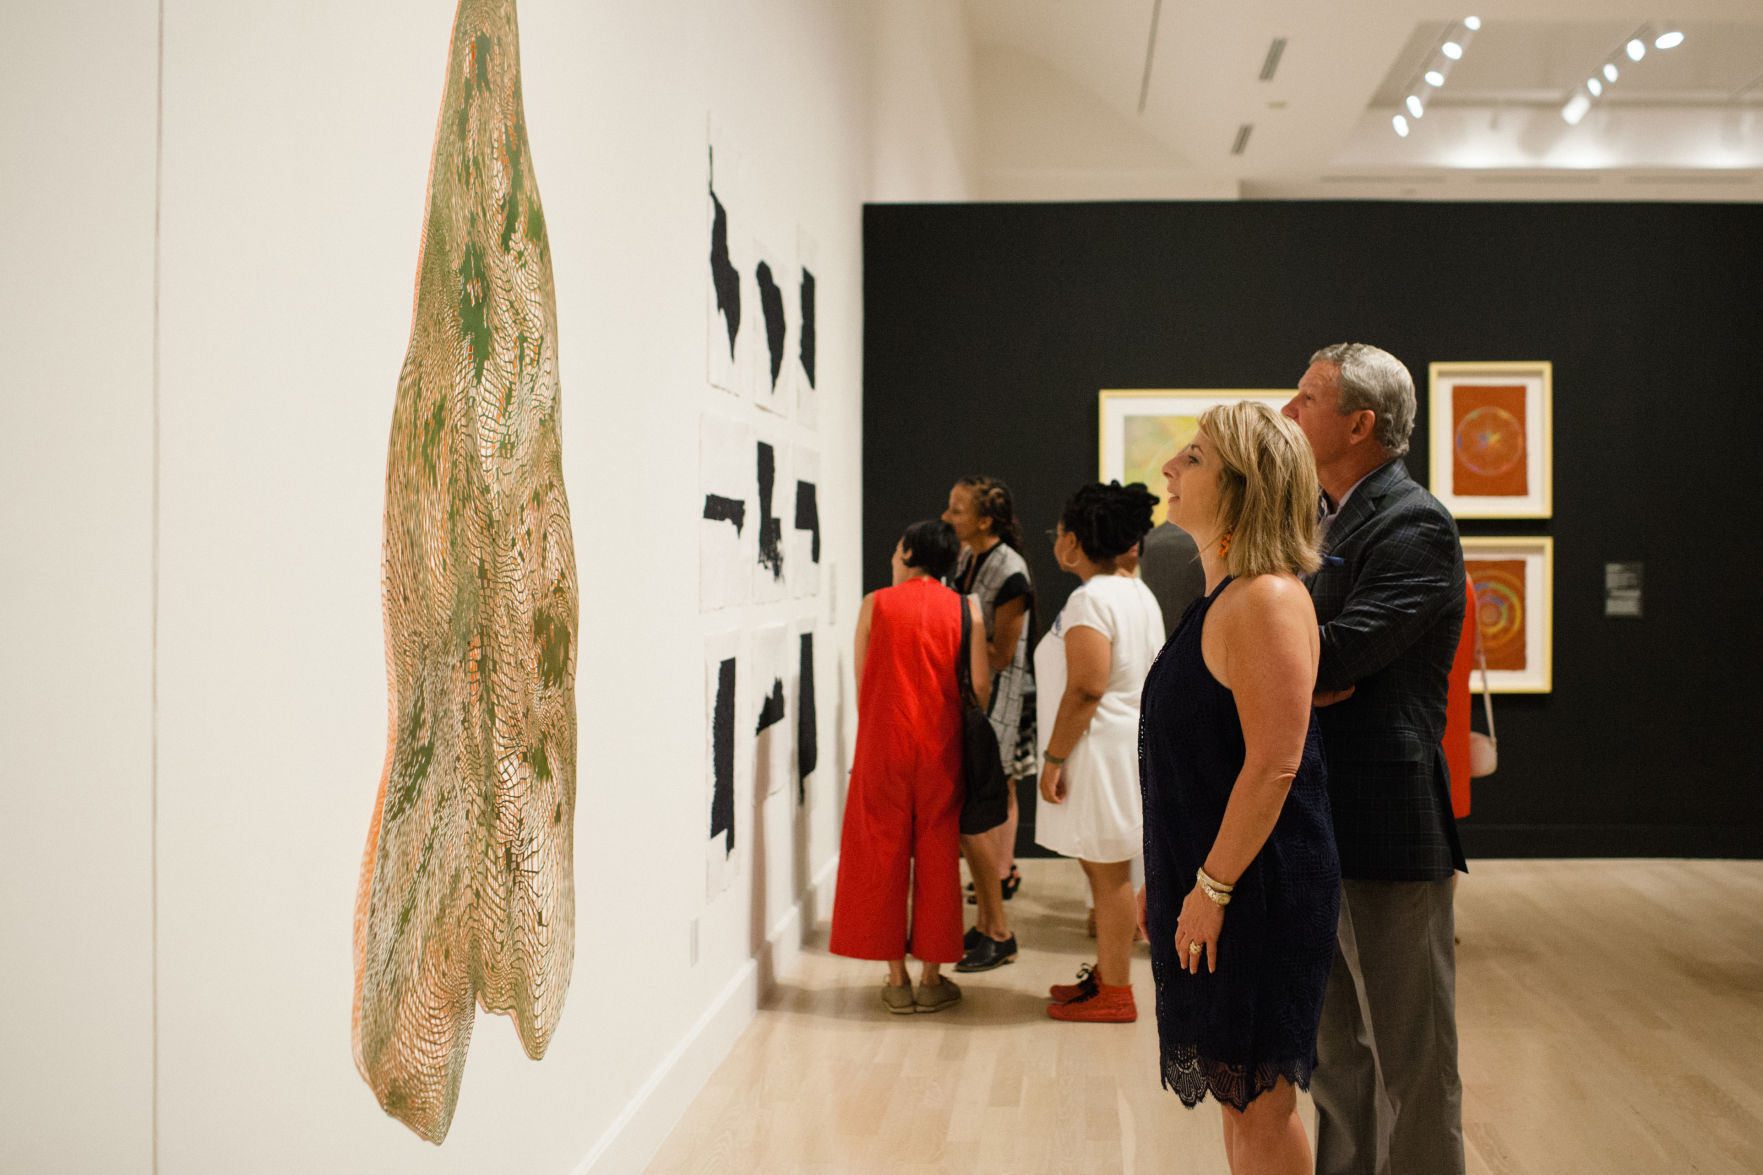 Weatherspoon Art Museum opens its 44th Art